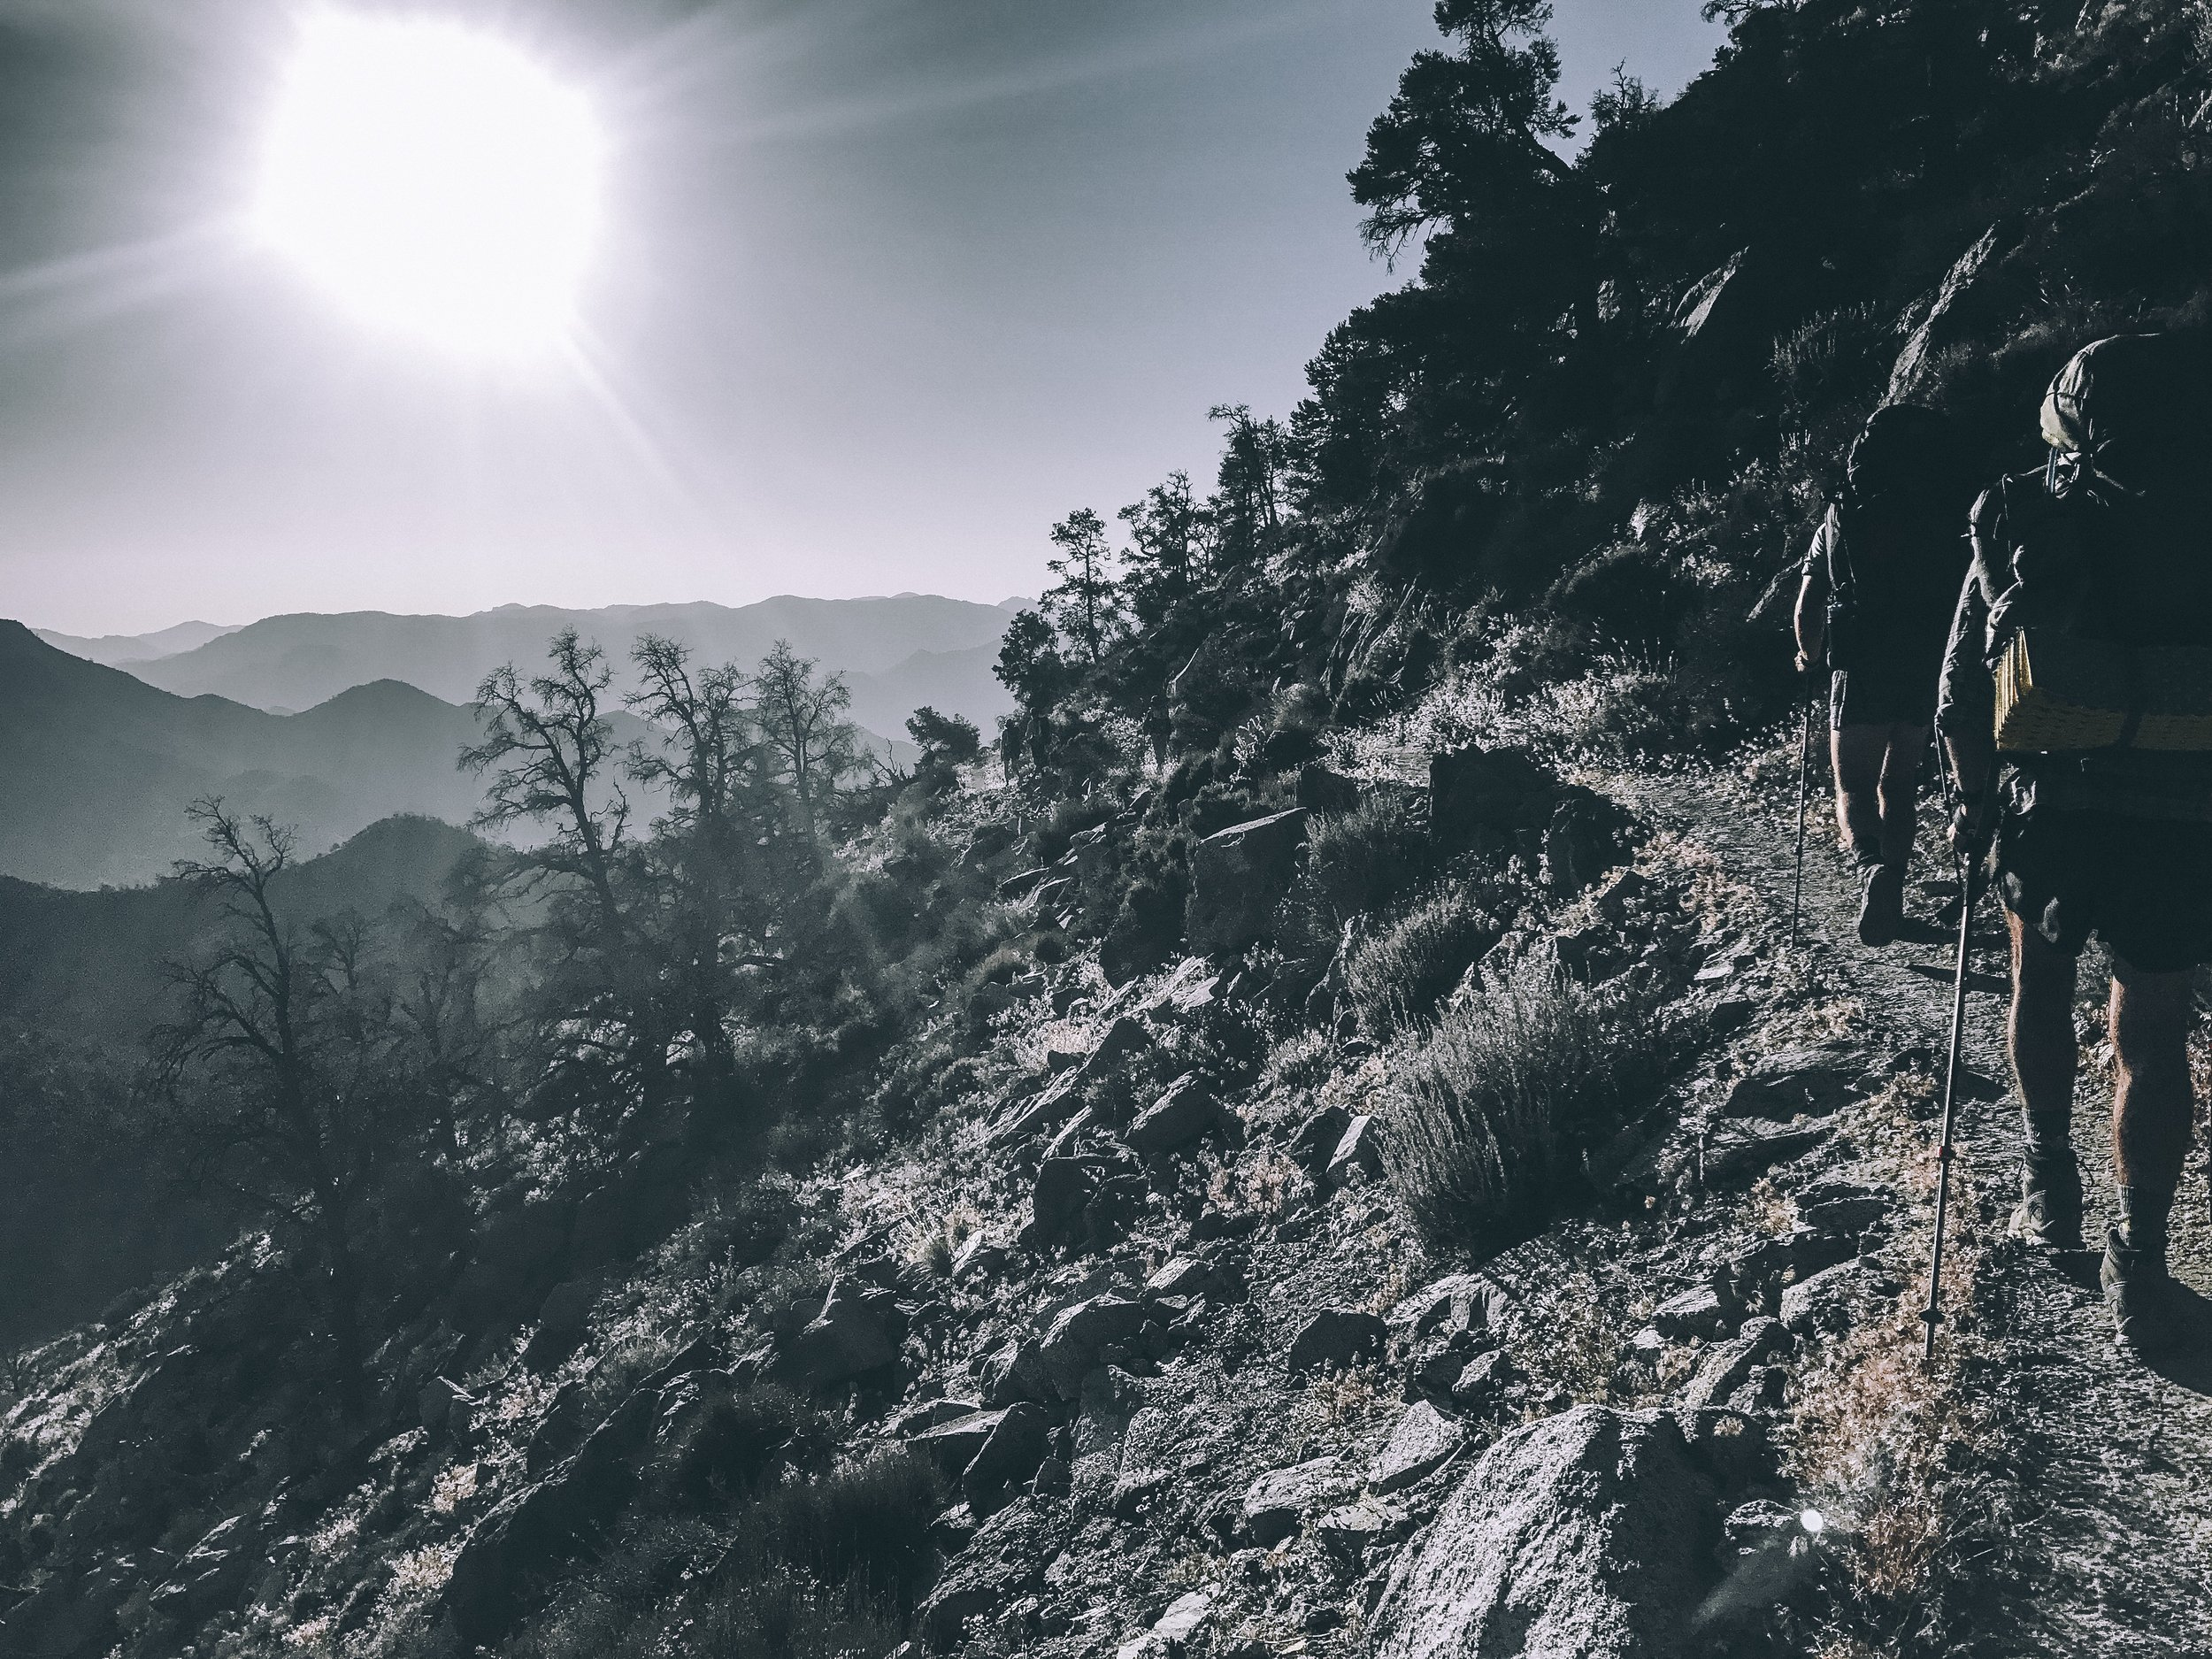 Making the climb out of Lake Isabella with Zorro and Viking